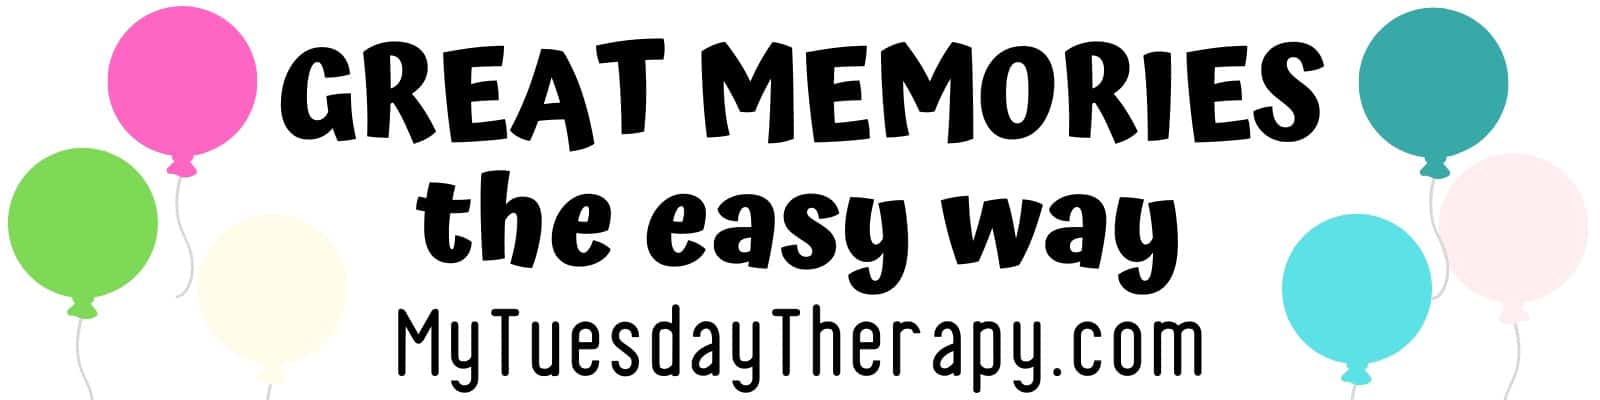 Great Memories The Easy Way - MyTuesdayTherapy